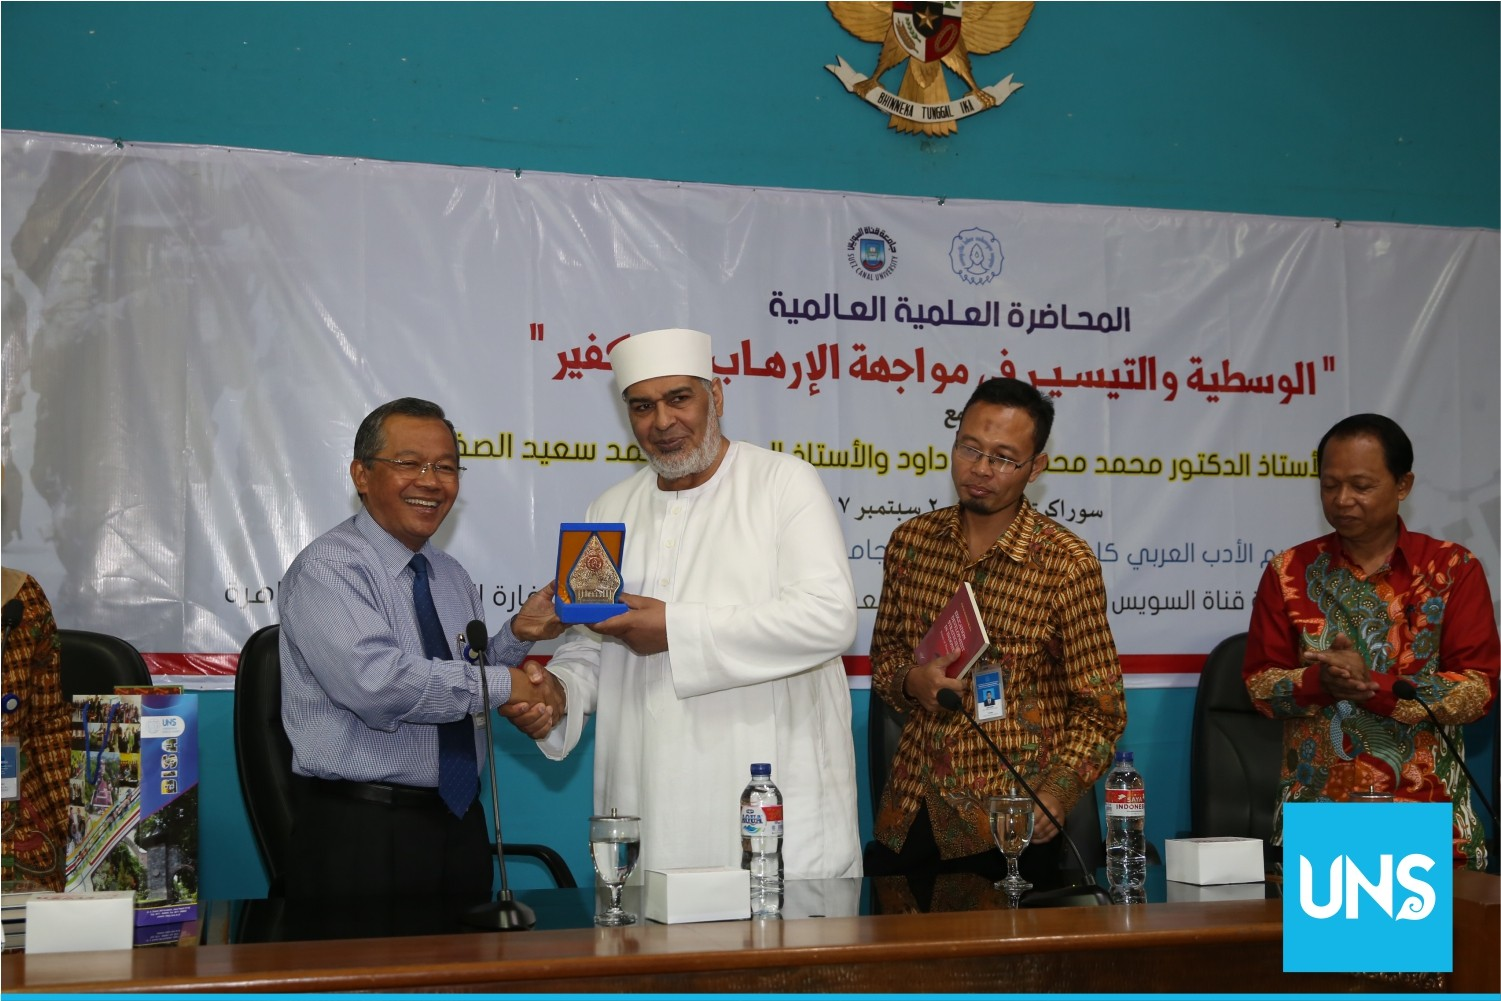 UNS Cultural Faculty Conducts General Lecture against Terrorism